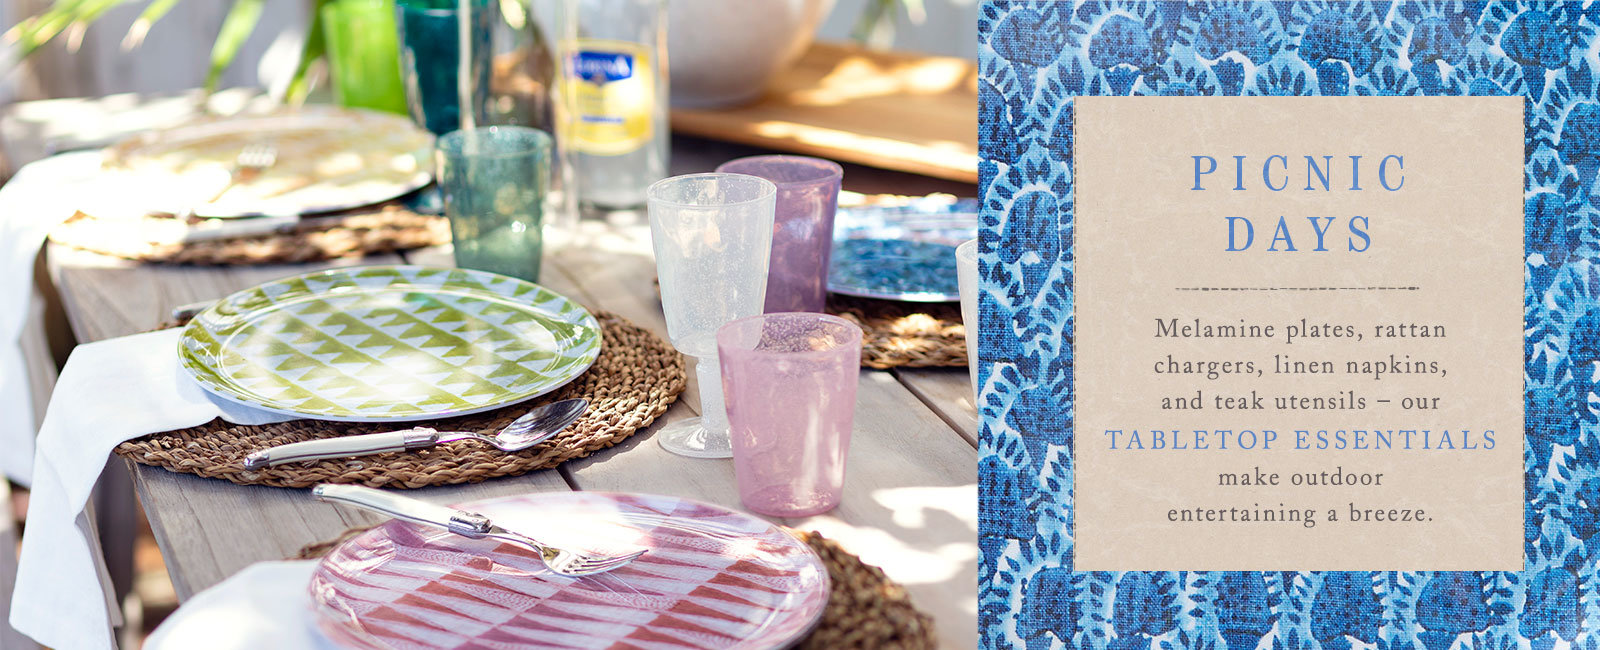 PICNIC DAYS | Melamine plates, rattan chargers, linen napkins, and teak utensils | our outdoor tabletop essentials make outdoor entertaining a breeze.